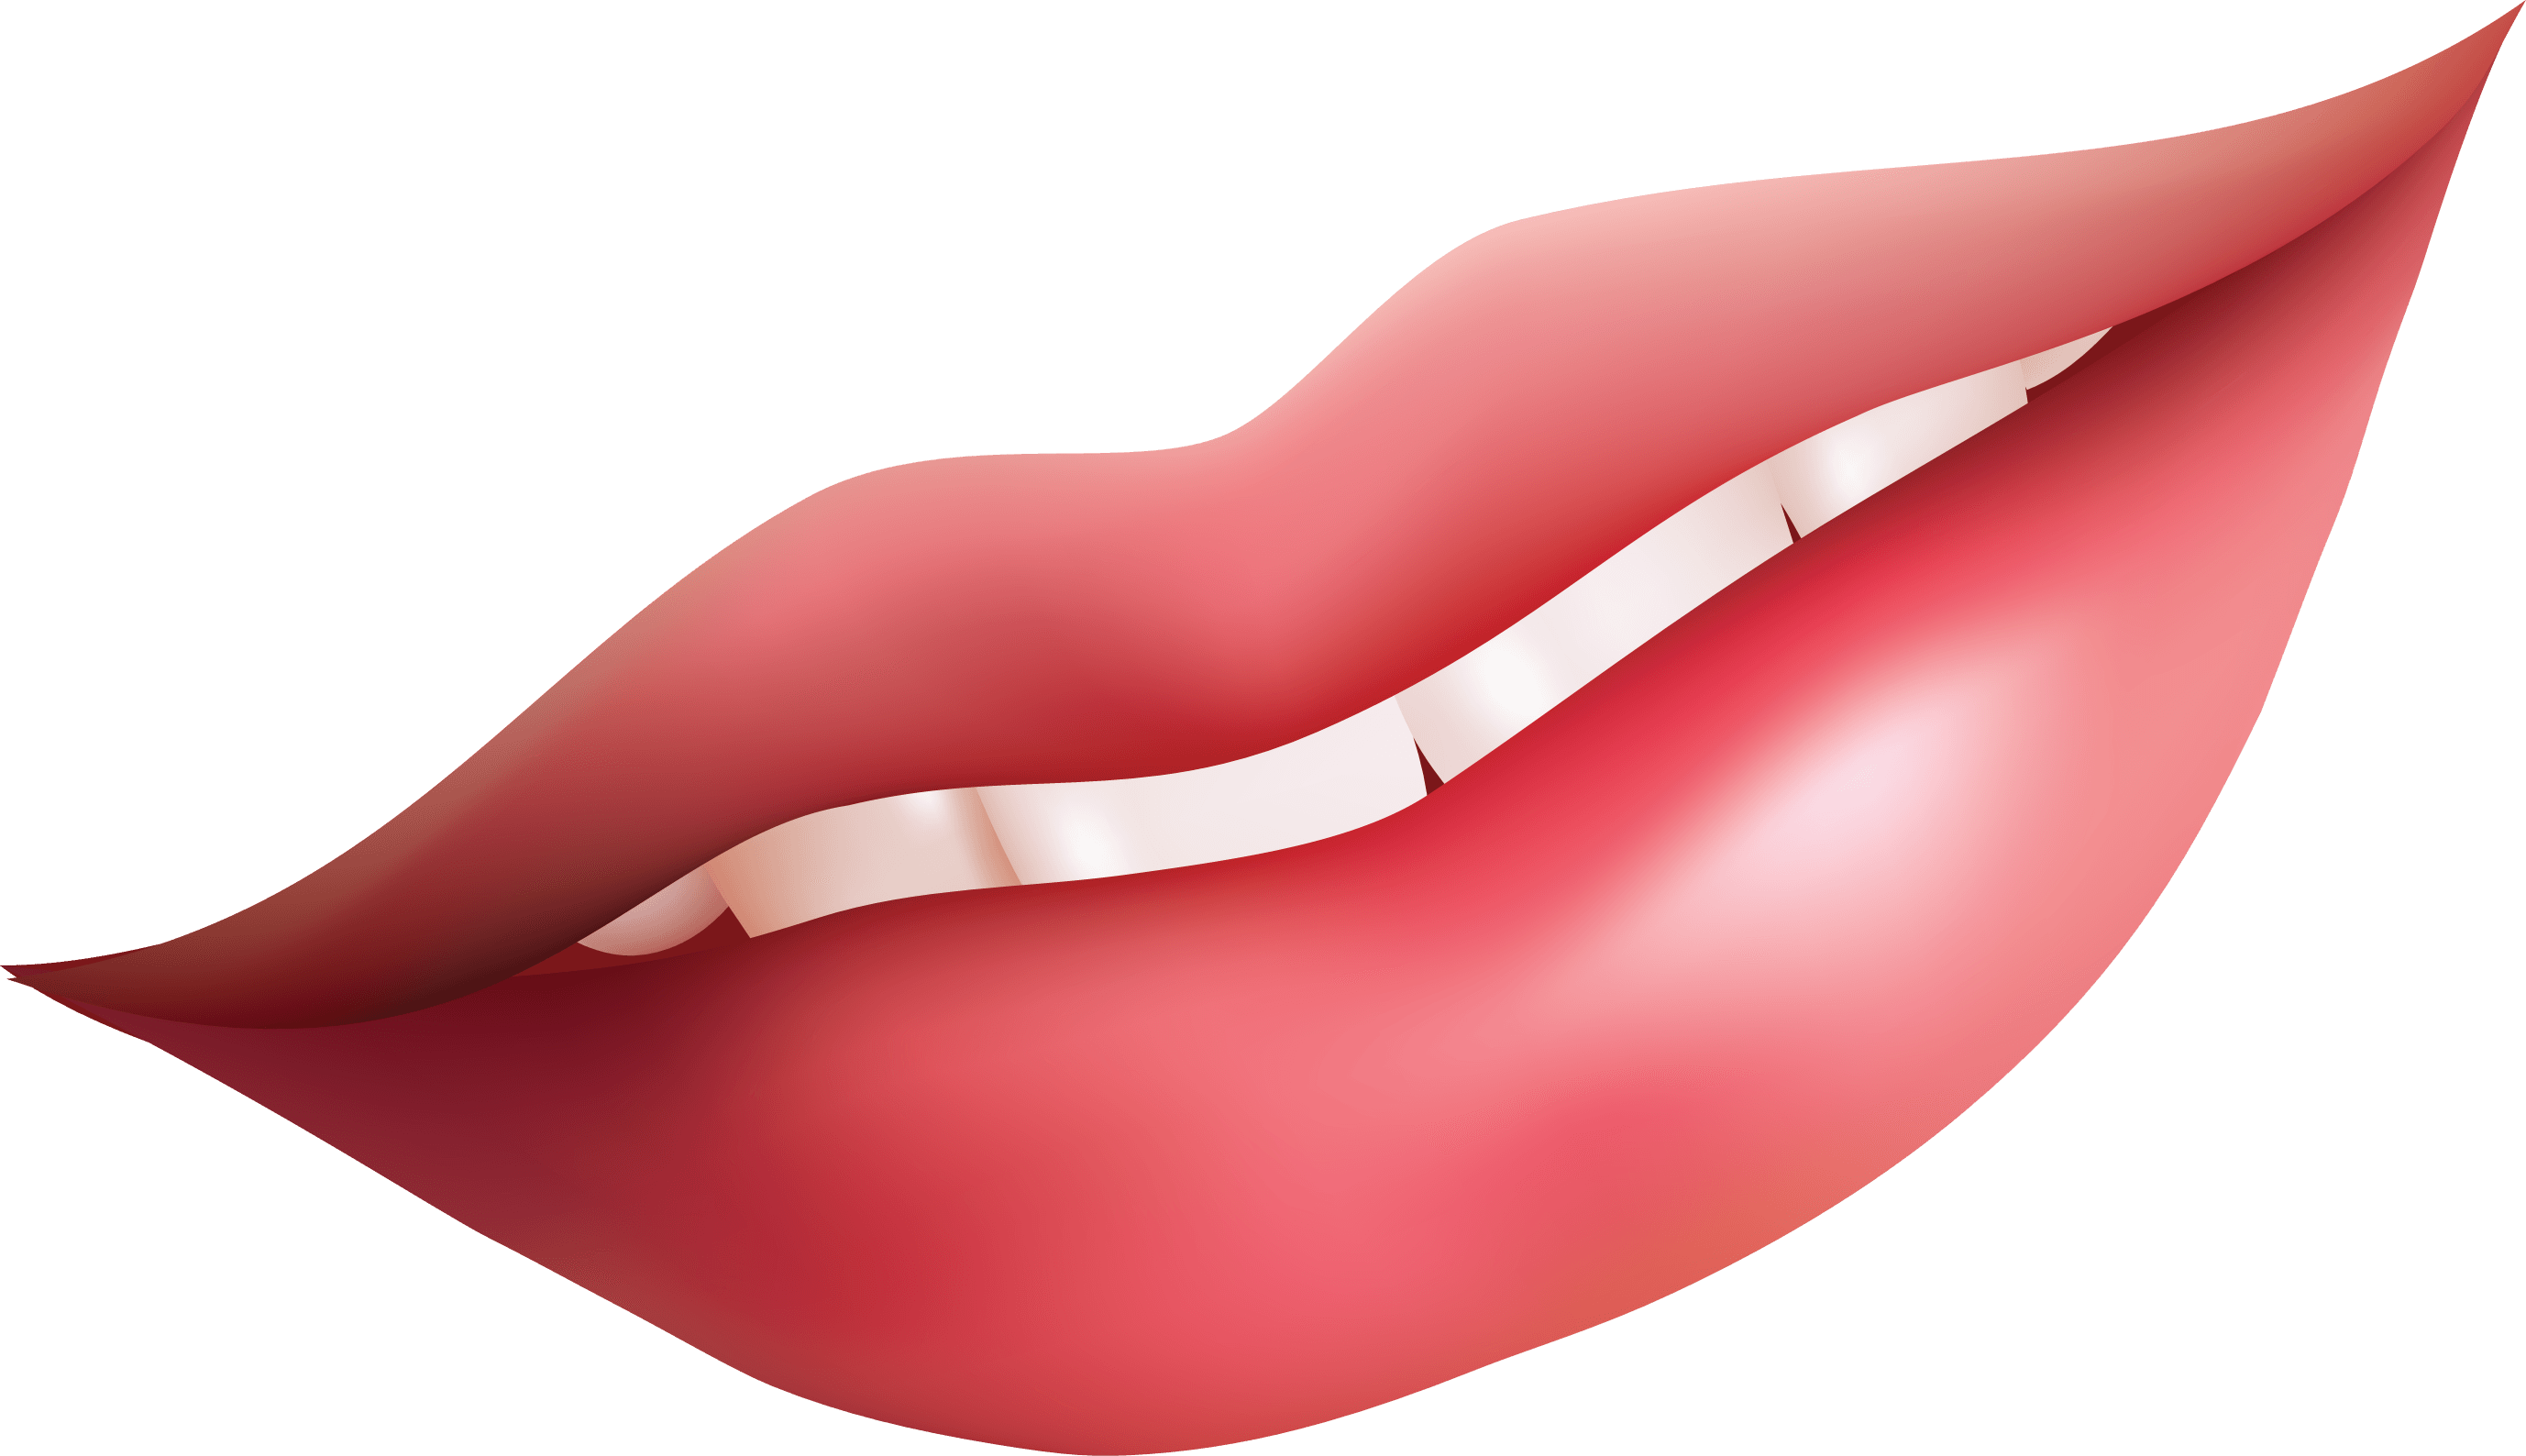 Taste clipart mouth. Lips cliparts zone free